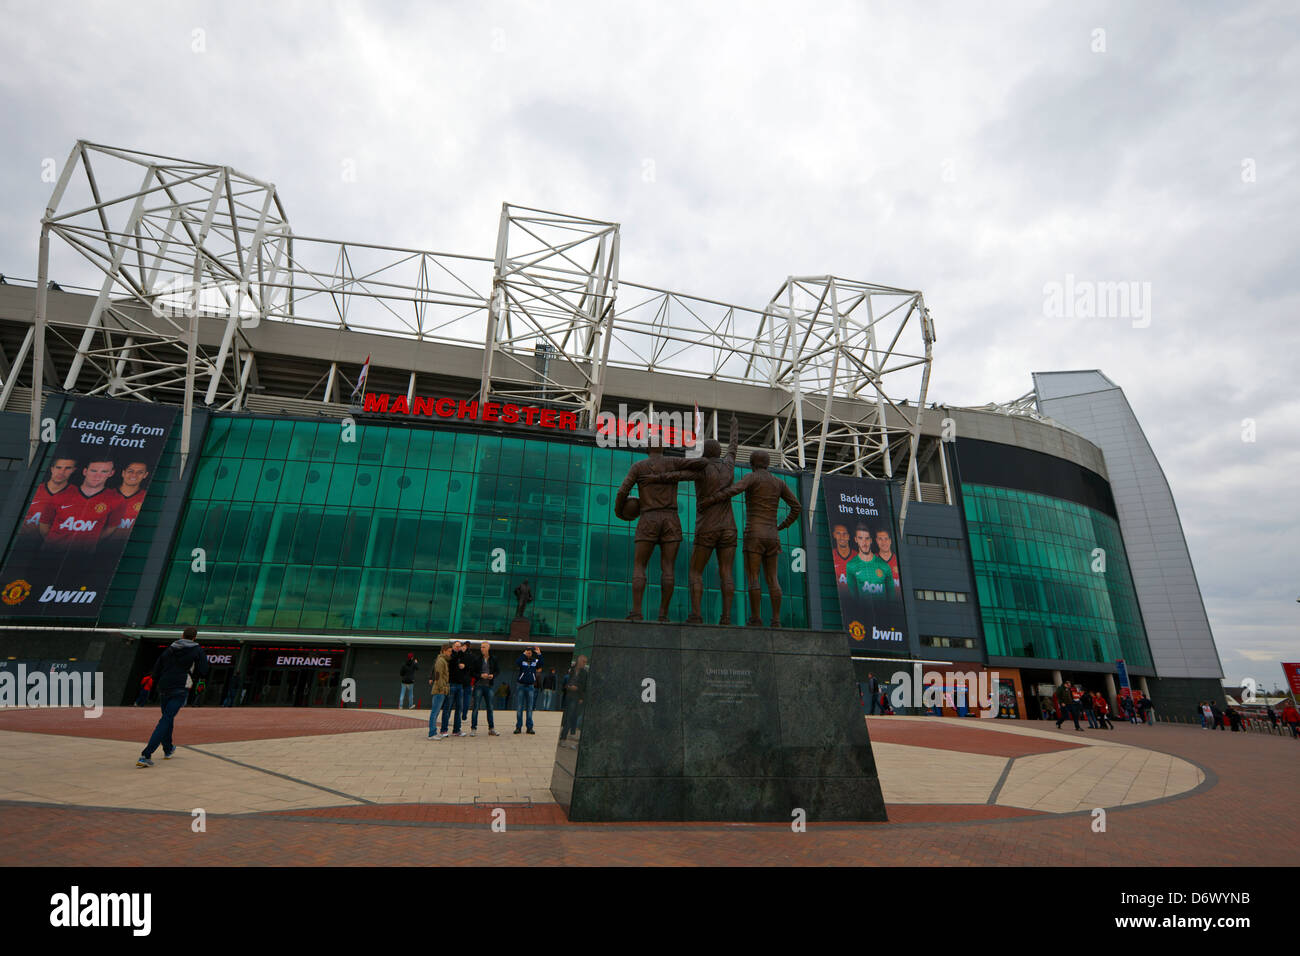 Manchester United stadium in Old Trafford. - Stock Image